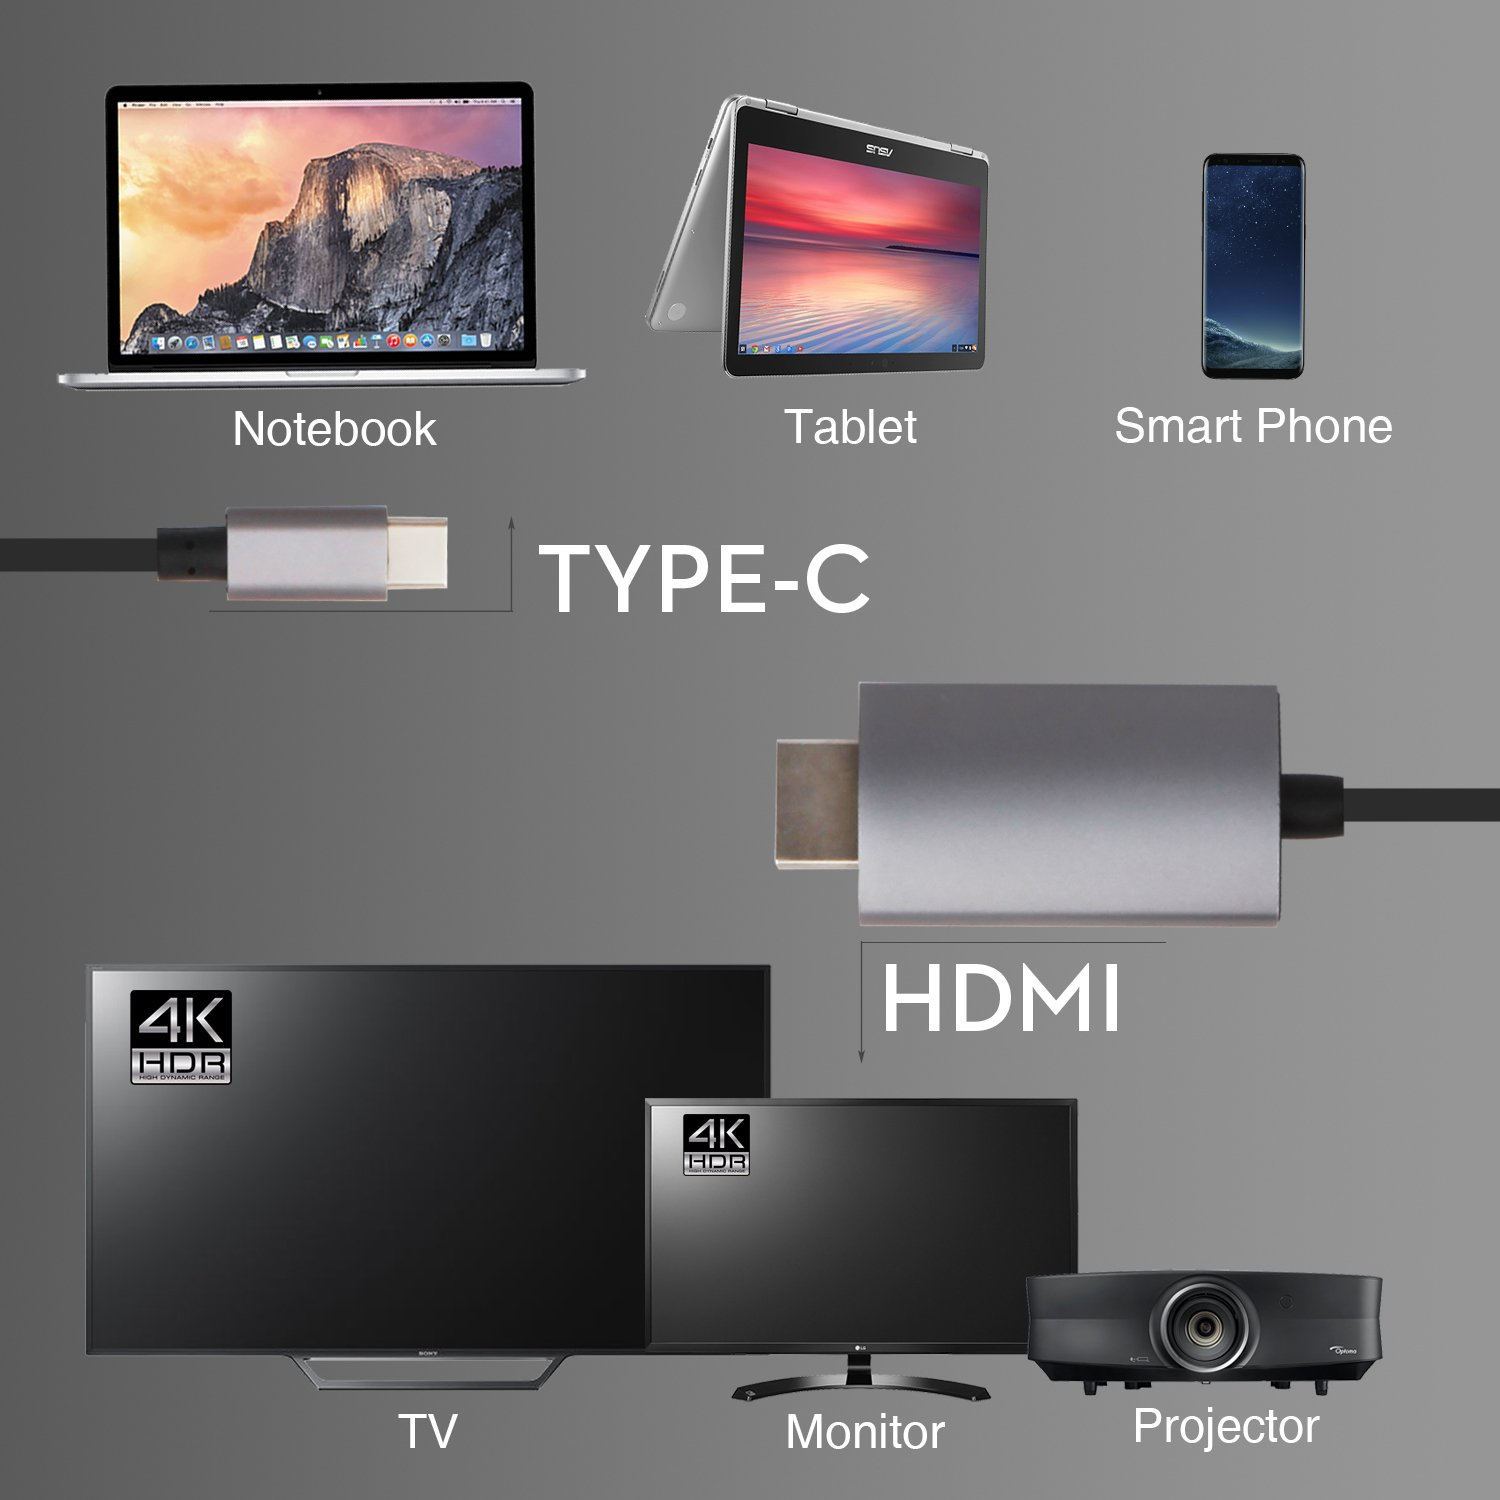 Cable USB C a HDMI 3D 4K*2K@60Hz, Cable USB 3.1 Tipo C a HDMI (Thunderbolt 3 Compatibles ) para 2017/2016 MacBook Pro, DELL Book, Galaxy Note 8/S8/S8 Plus, Huawei Mate 10 /10 Pro -2m (Plug & Play)